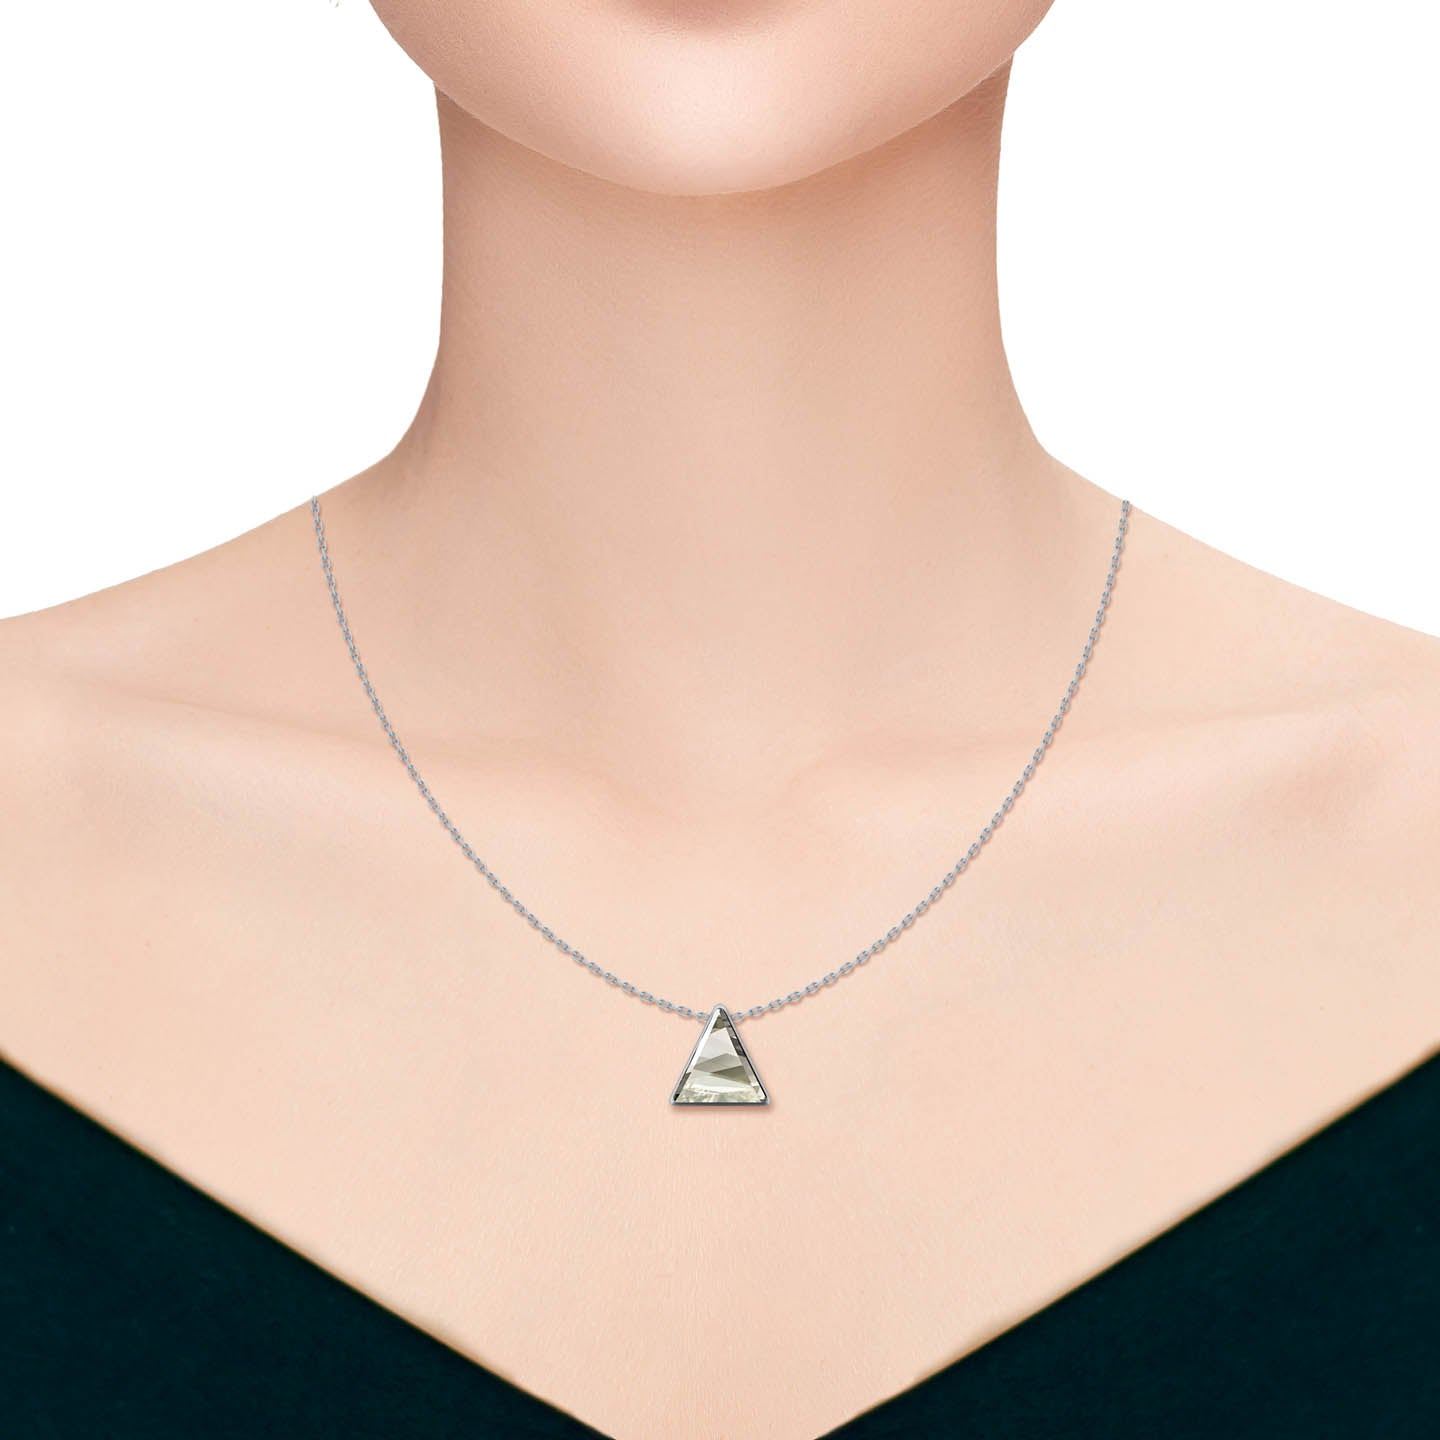 d6e050aca Helena Pendant Necklace with Grey Silver Shade Triangle Crystals from Swarovski  Silver Toned Rhodium Plated -